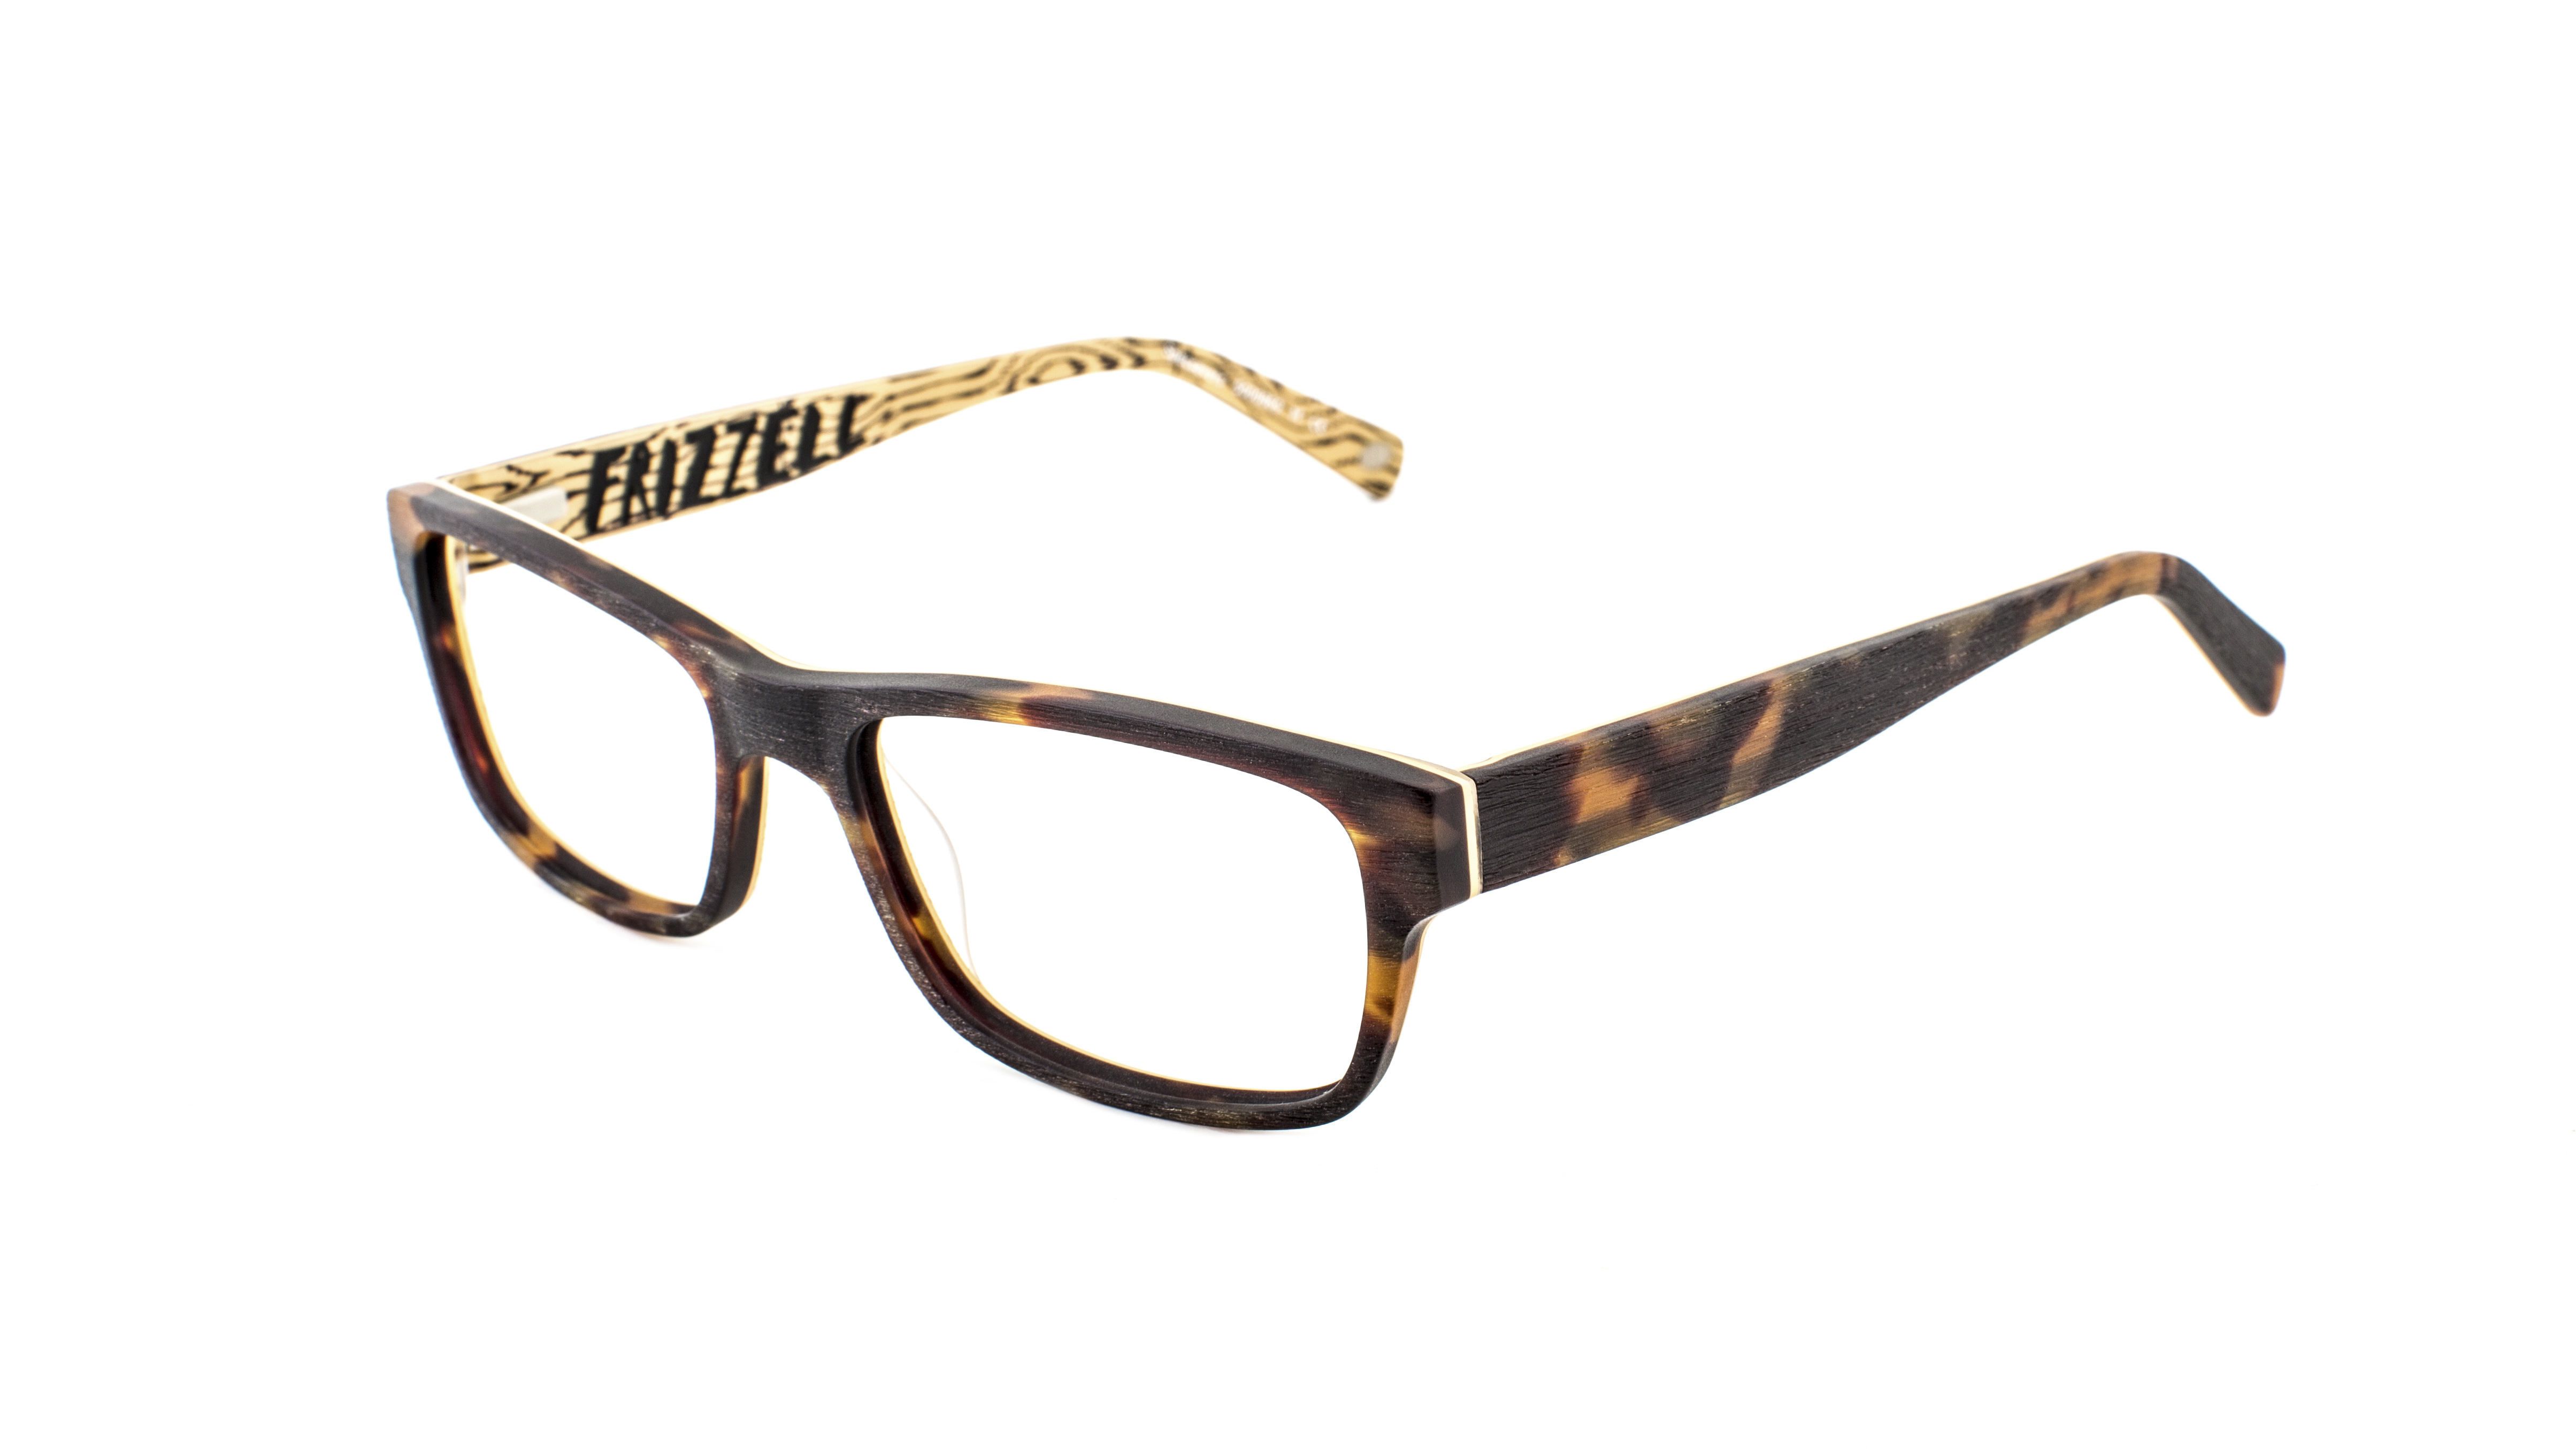 dick-frizzell-frame_sku-30473898_rrp-2-pairs-from-169